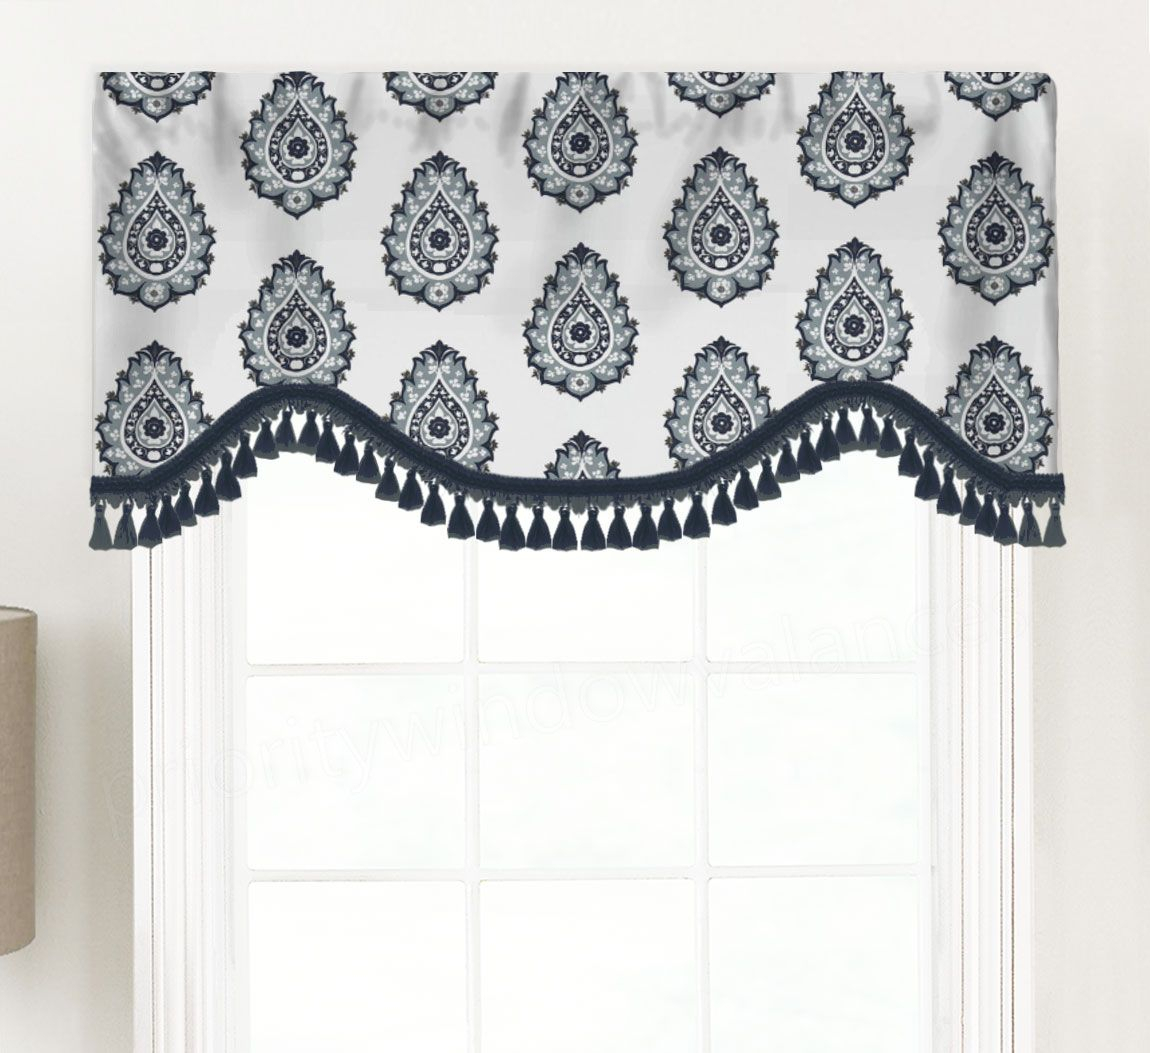 Damask (floral Medallion Print) Shaped Valance Curtain Throughout Medallion Window Curtain Valances (View 2 of 20)